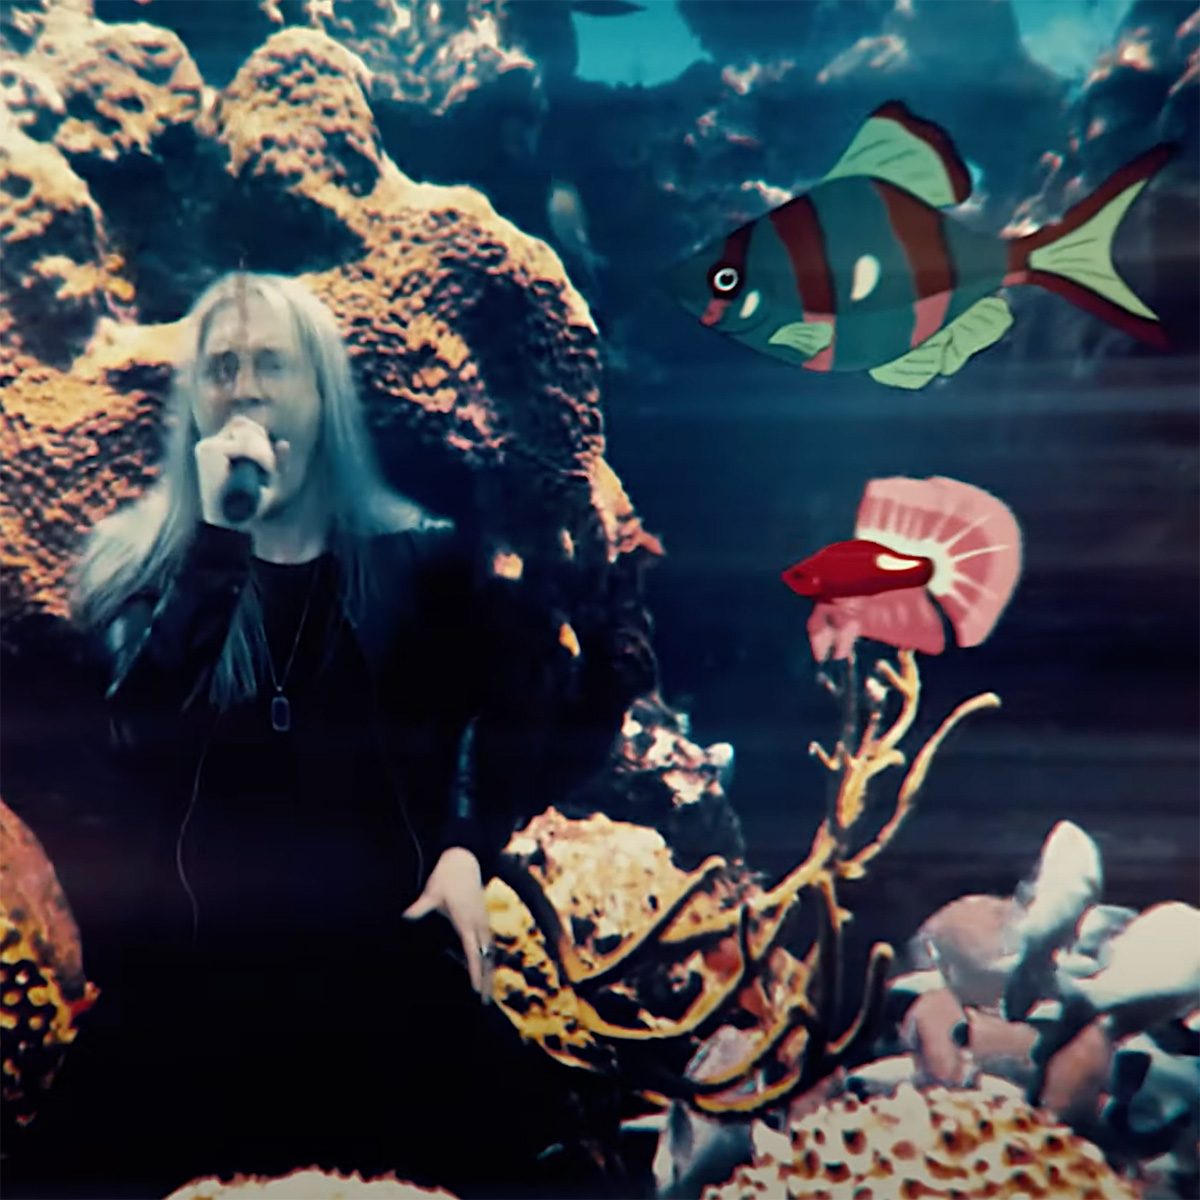 Powerglove 'Under the Sea' music video with Marc Hudson from Dragonforce